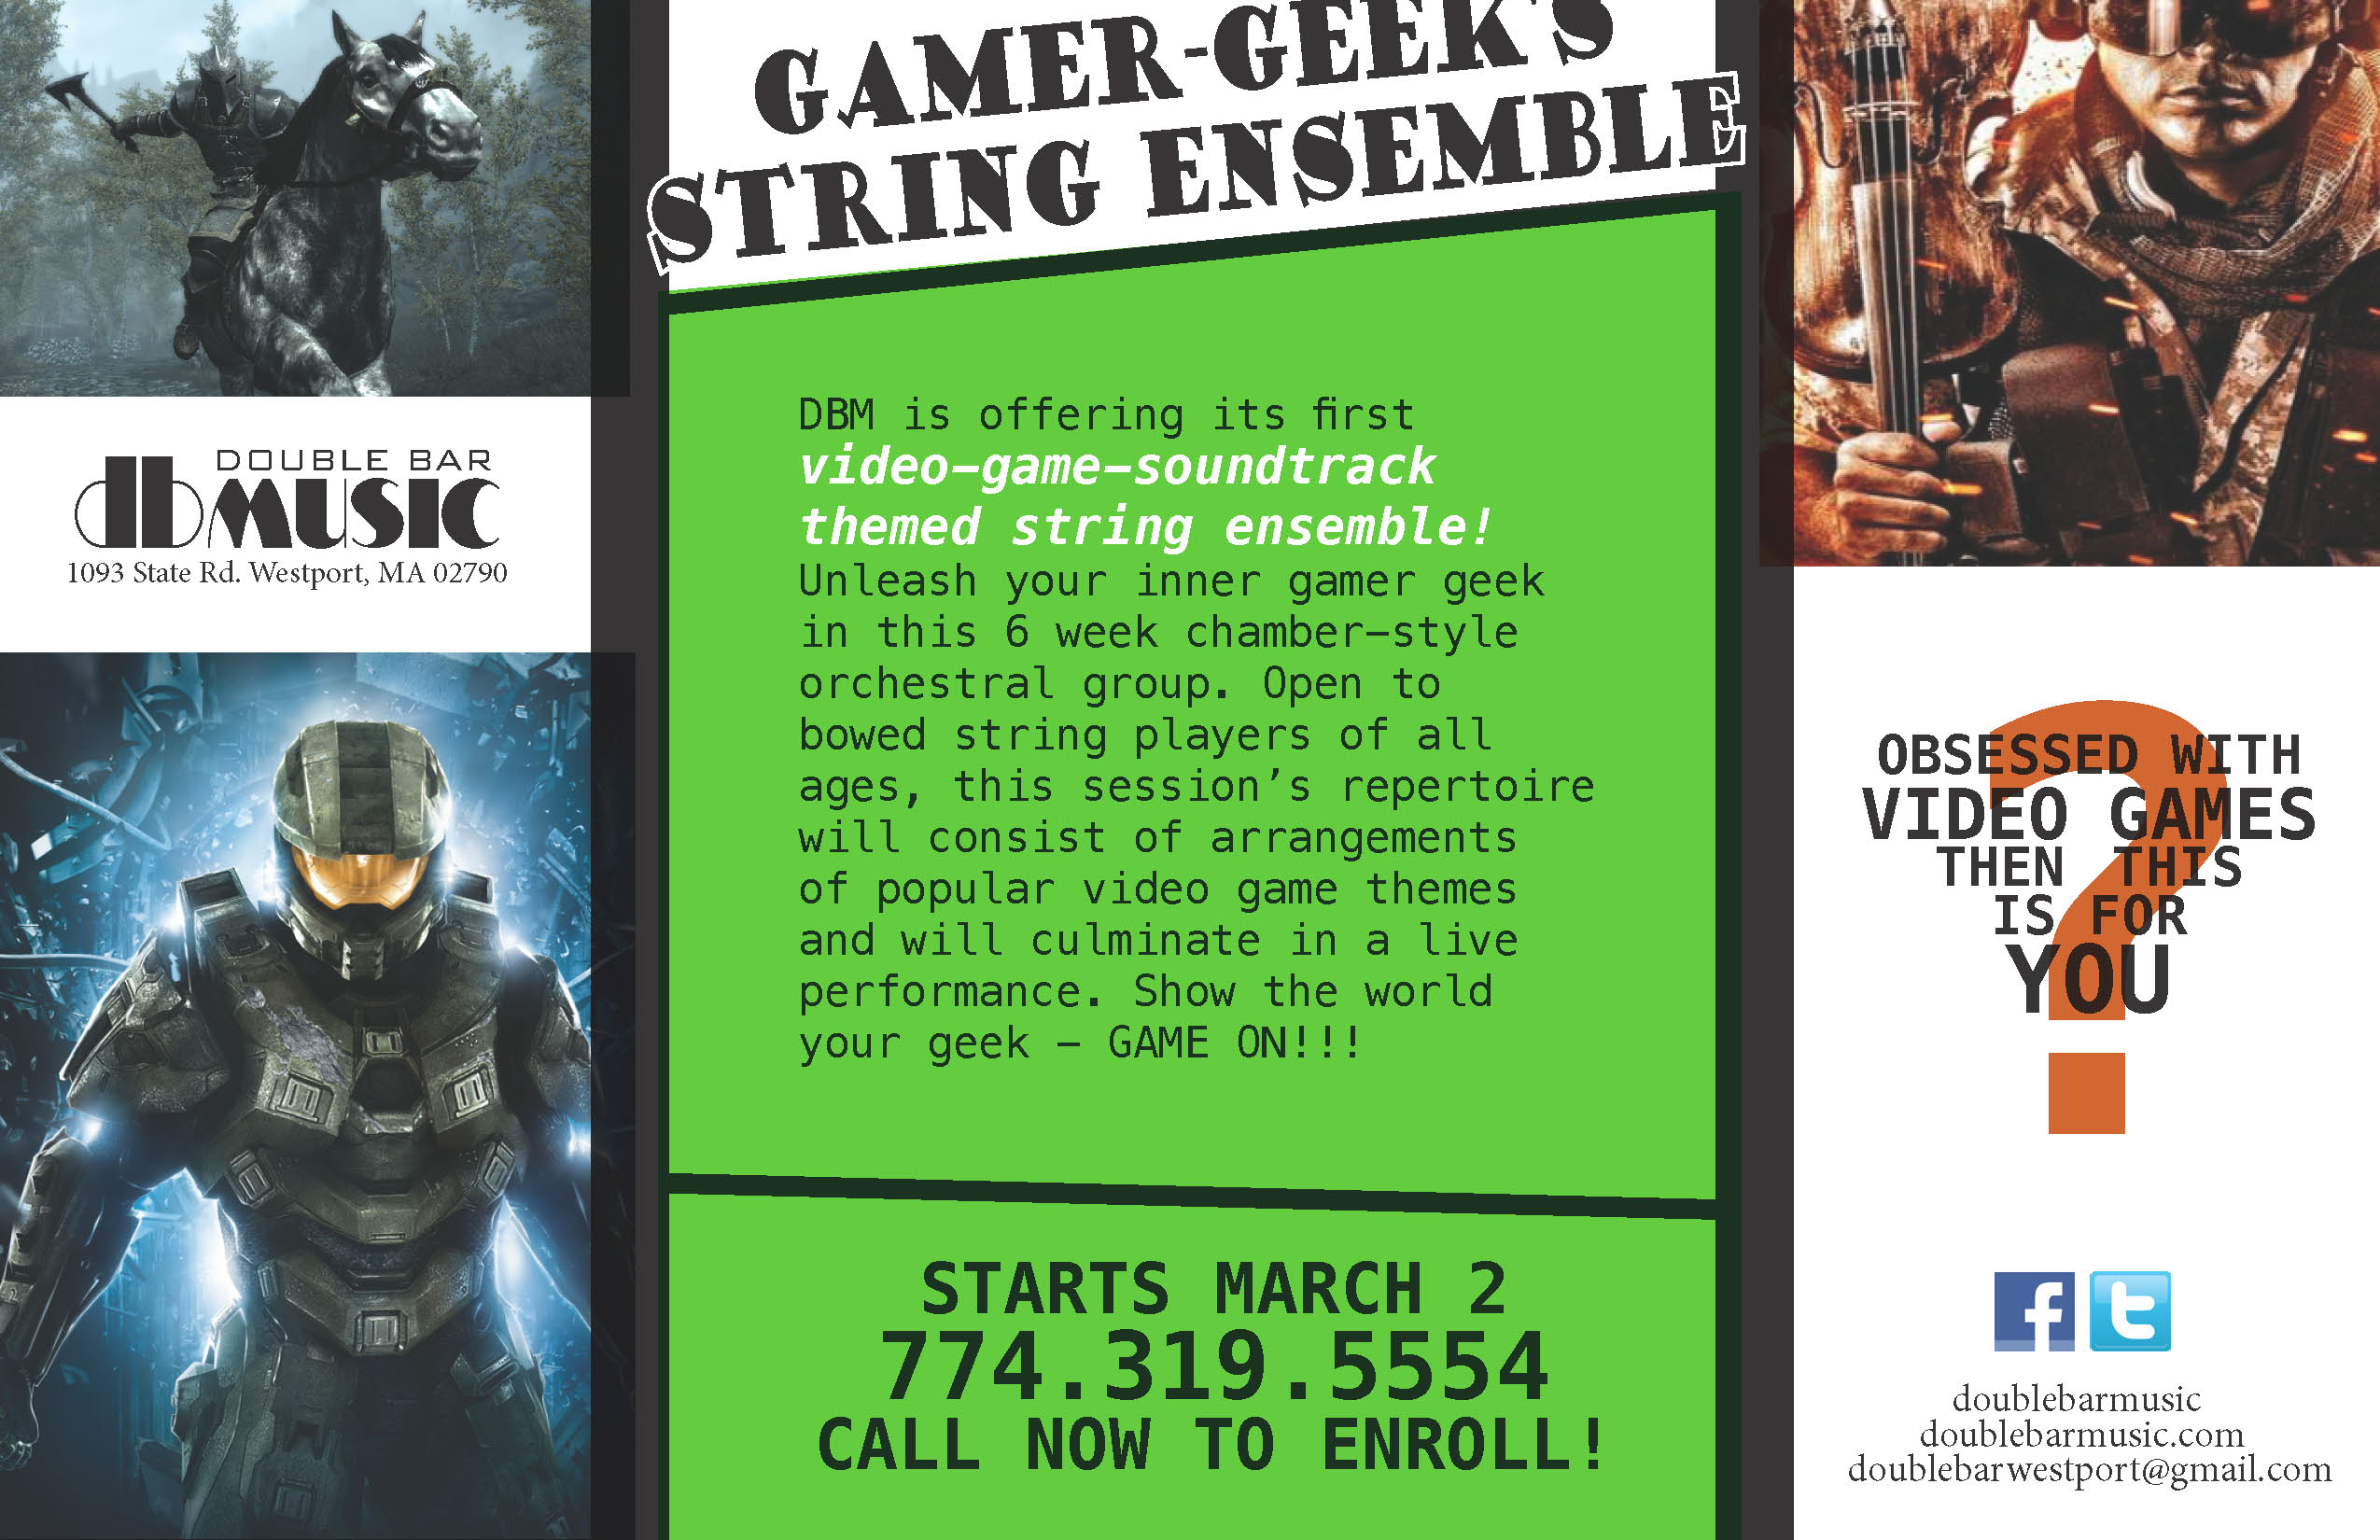 Gamer-Geek's String Ensemble